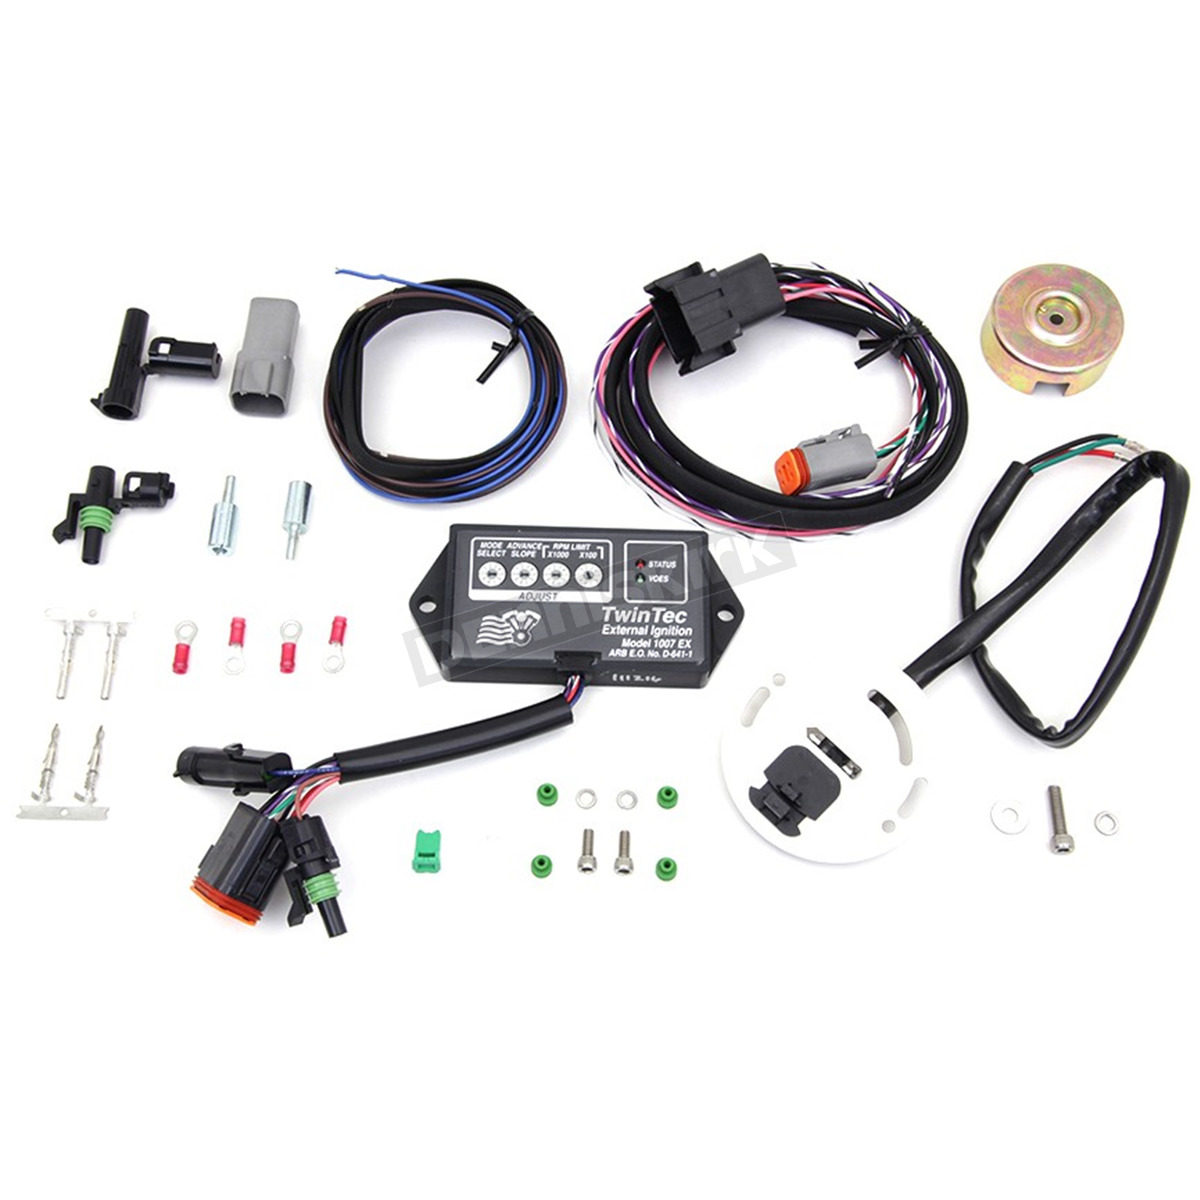 External Ignition Module - 3020 on